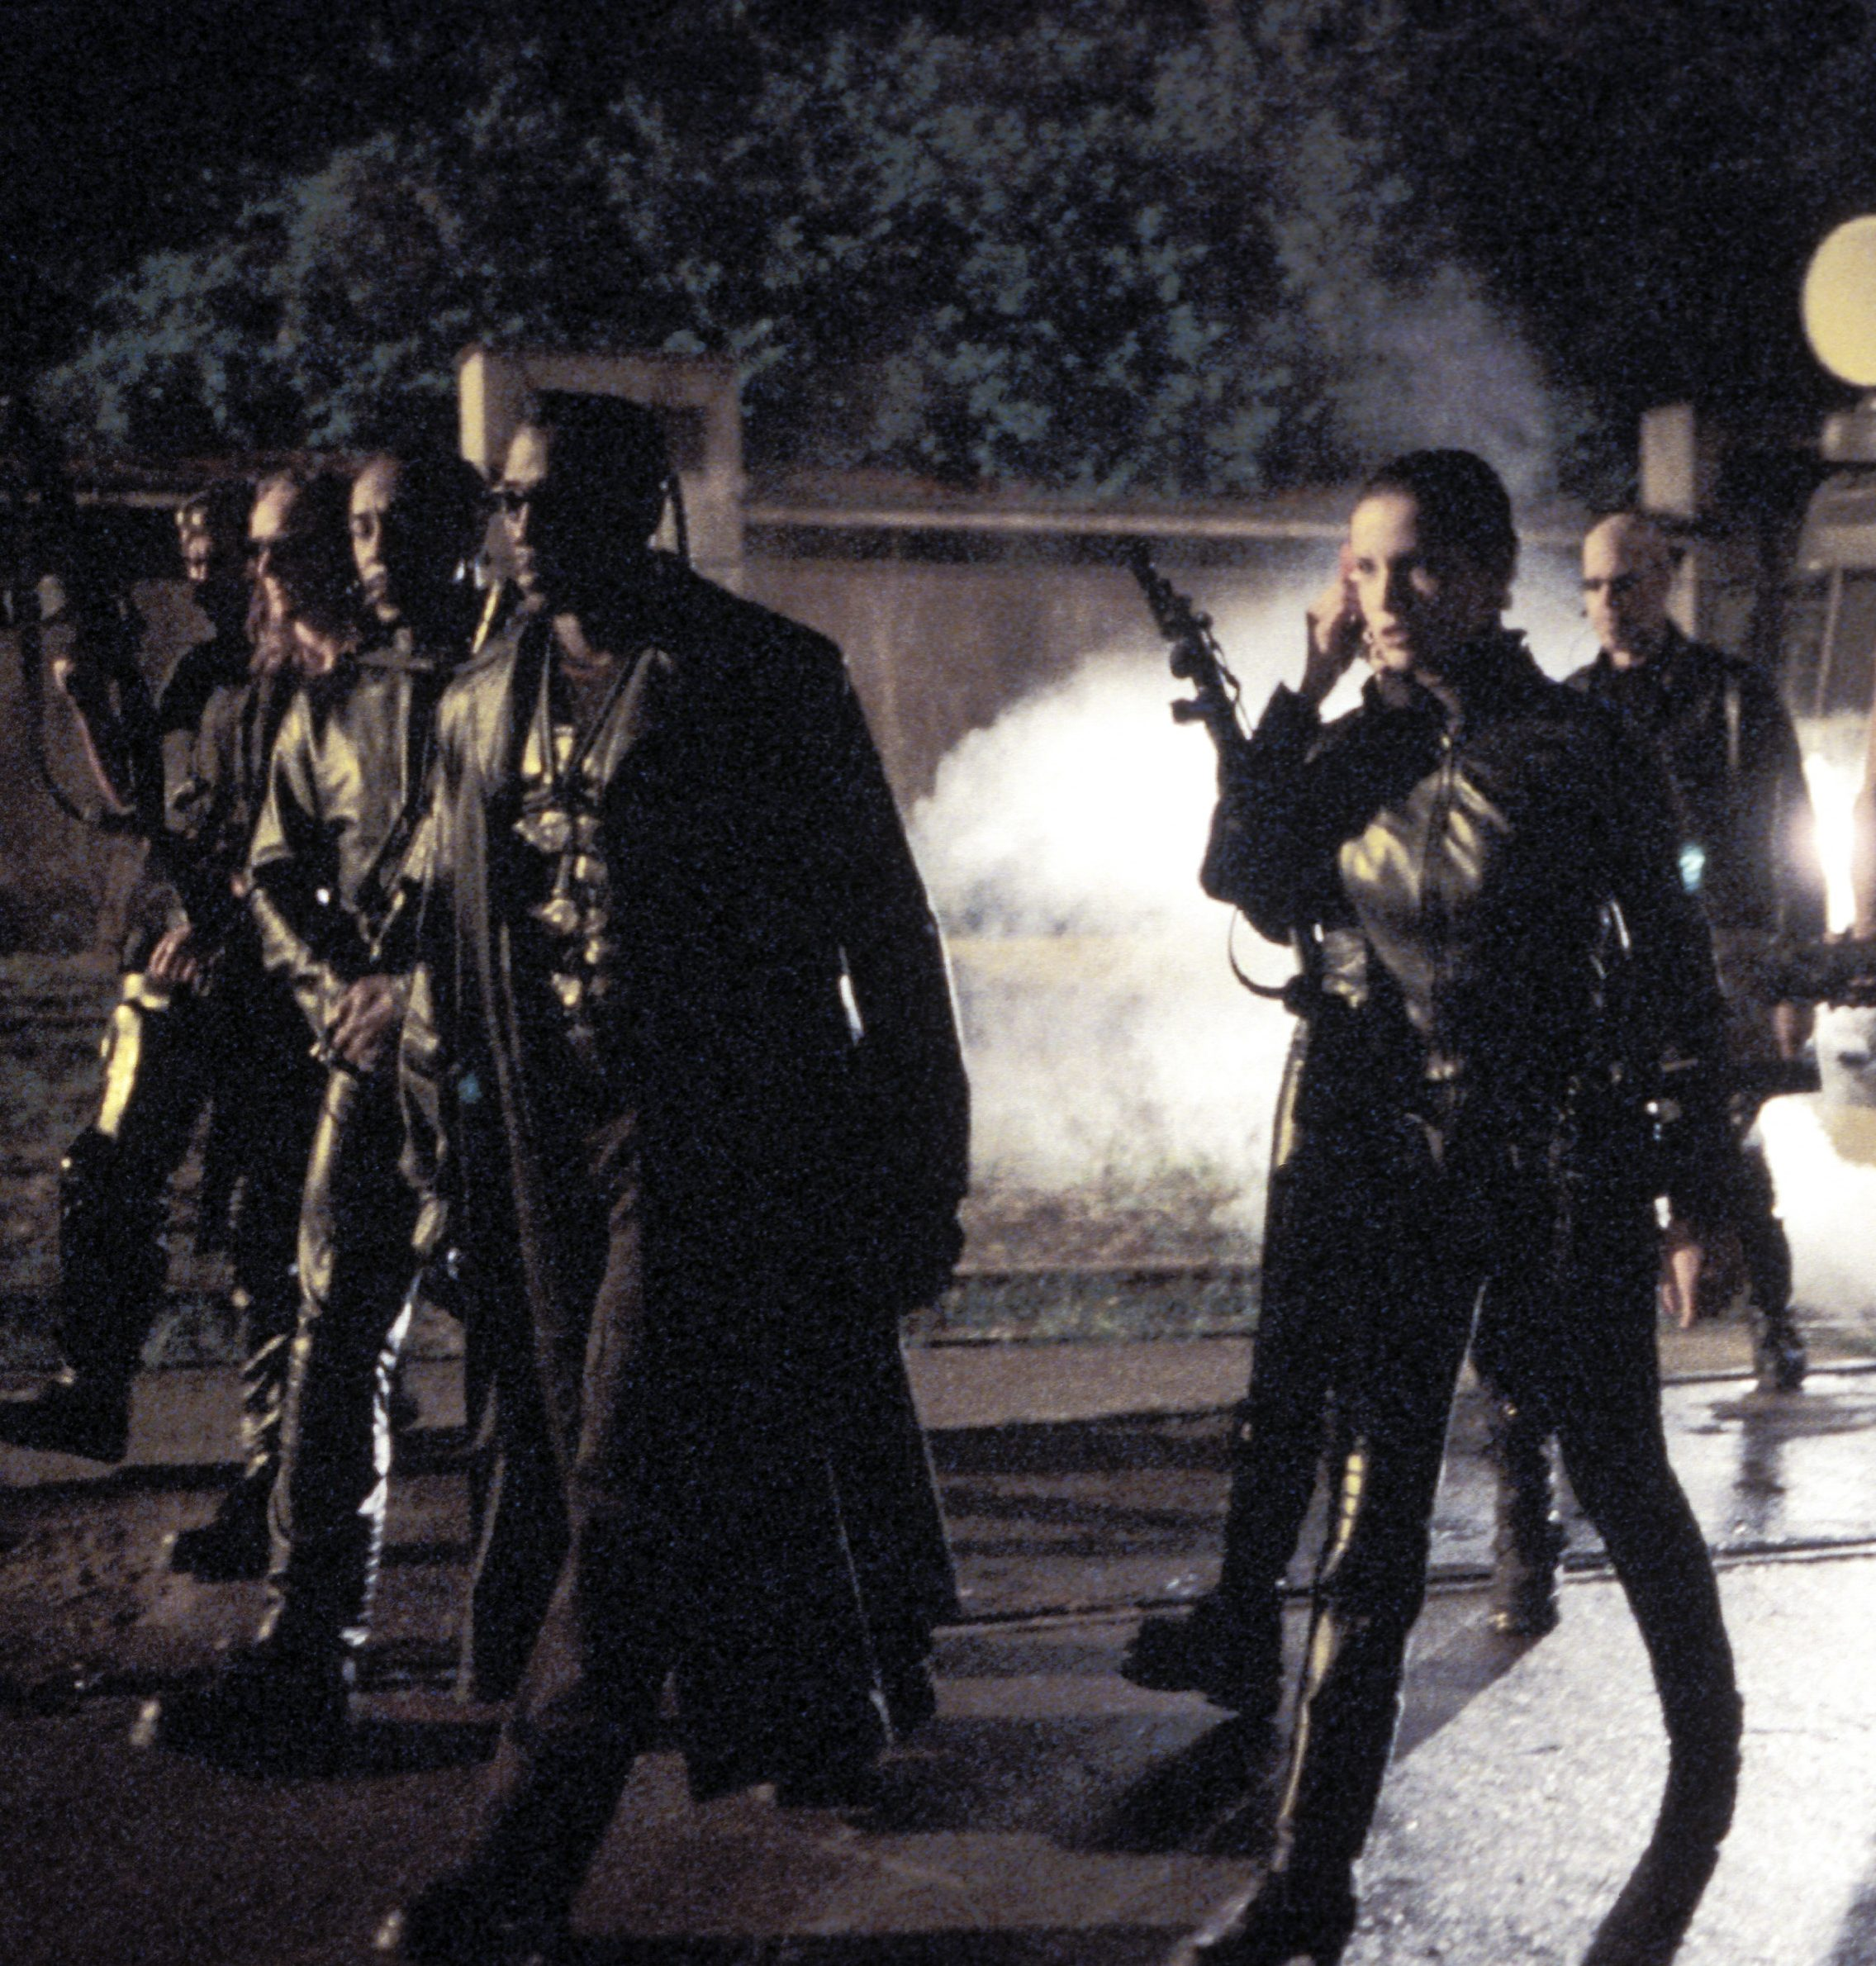 blade 2 cast e1583228571576 20 Horror Sequels That Are Actually Better Than The Original